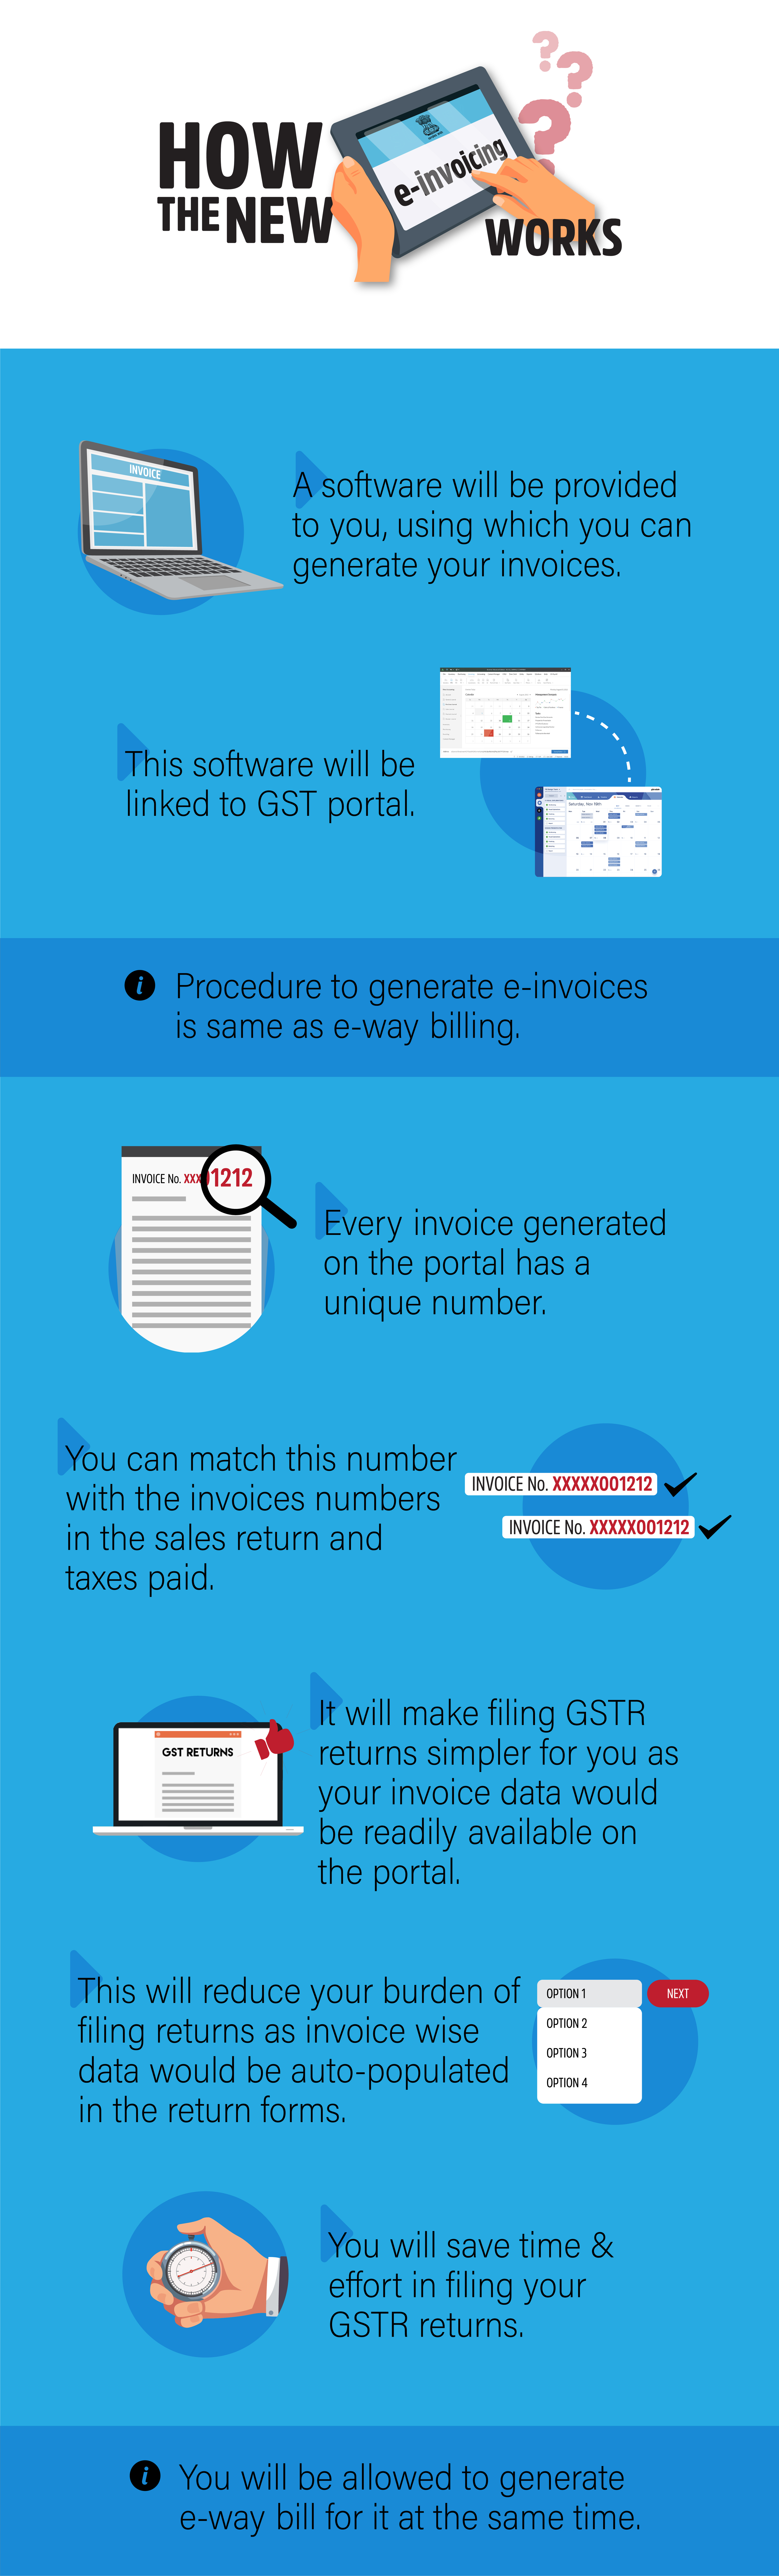 How this new e-invoicing works: A software will be provided to you using which you can generate your invoices. This software will be linked to GST portal. Procedure to generate e-invoices is same as e-way billing. Every invoice generated on the portal has a unique number. You can match this number with the invoices numbers in the sales return and taxes paid. It will make filing GSTR returns simpler for you as your invoice data would be readily available on the portal. This will reduce your burden of filing returns as invoice wise data would be auto-populated in the return forms. You will save time & effort in filing your GSTR returns. You will be allowed to generate e-way bill for it at the same time.